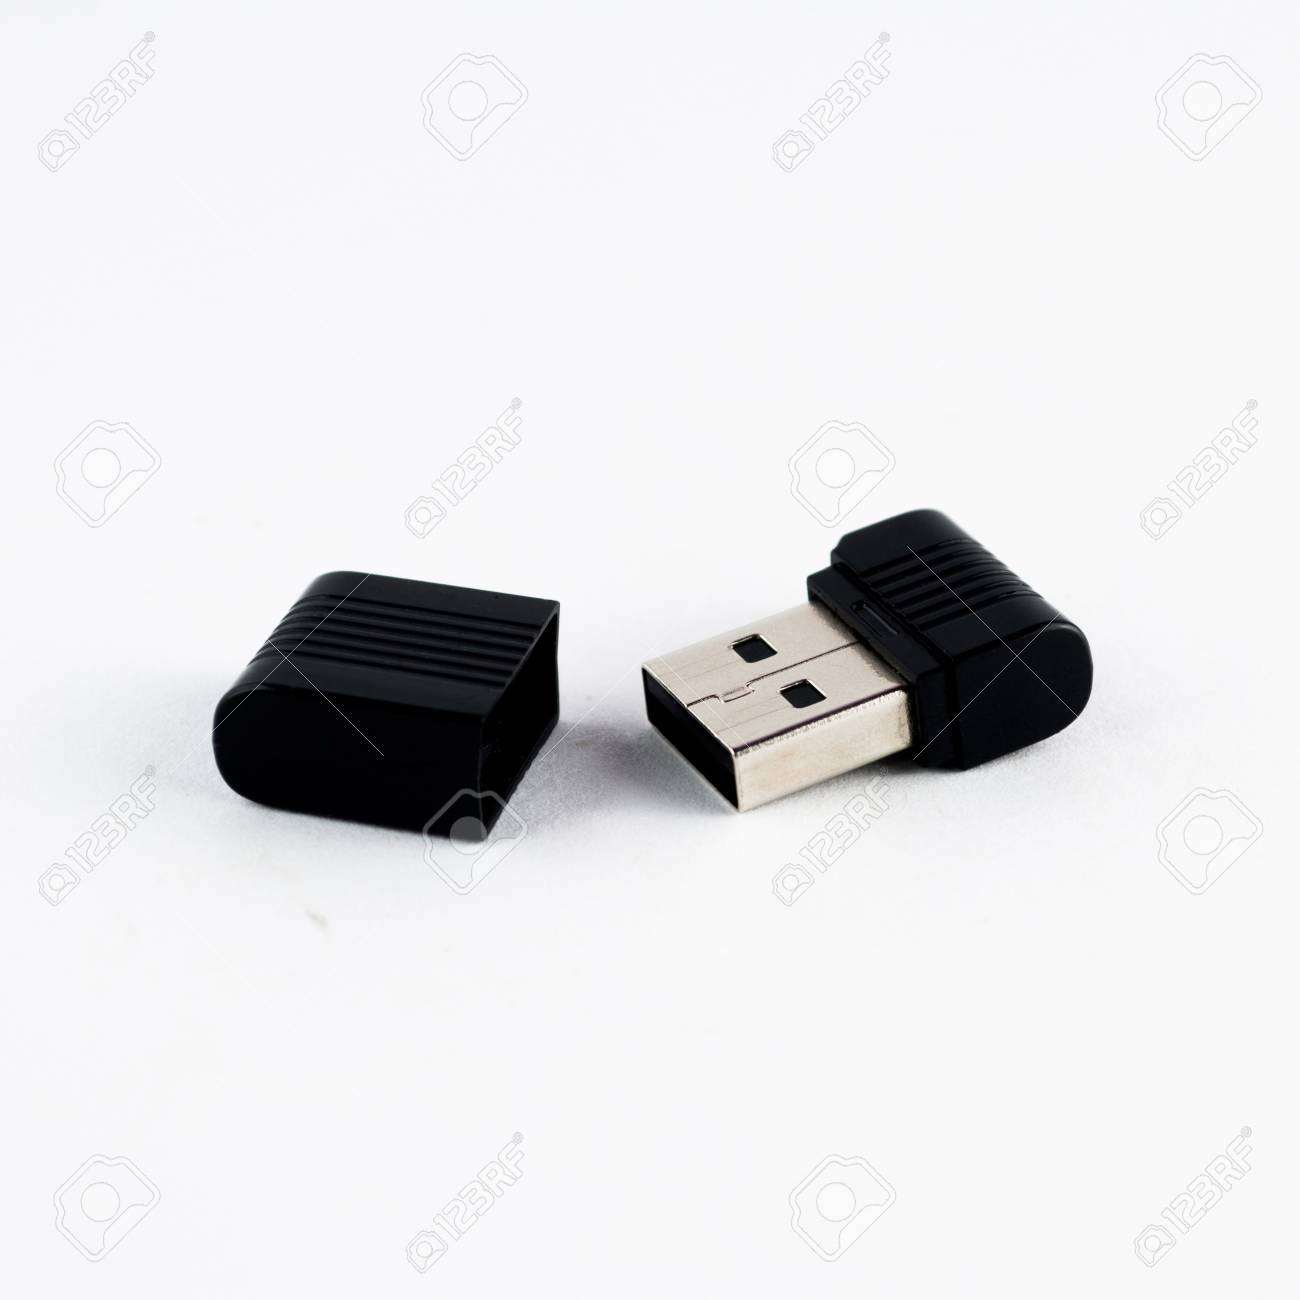 Thumb drives flash drives